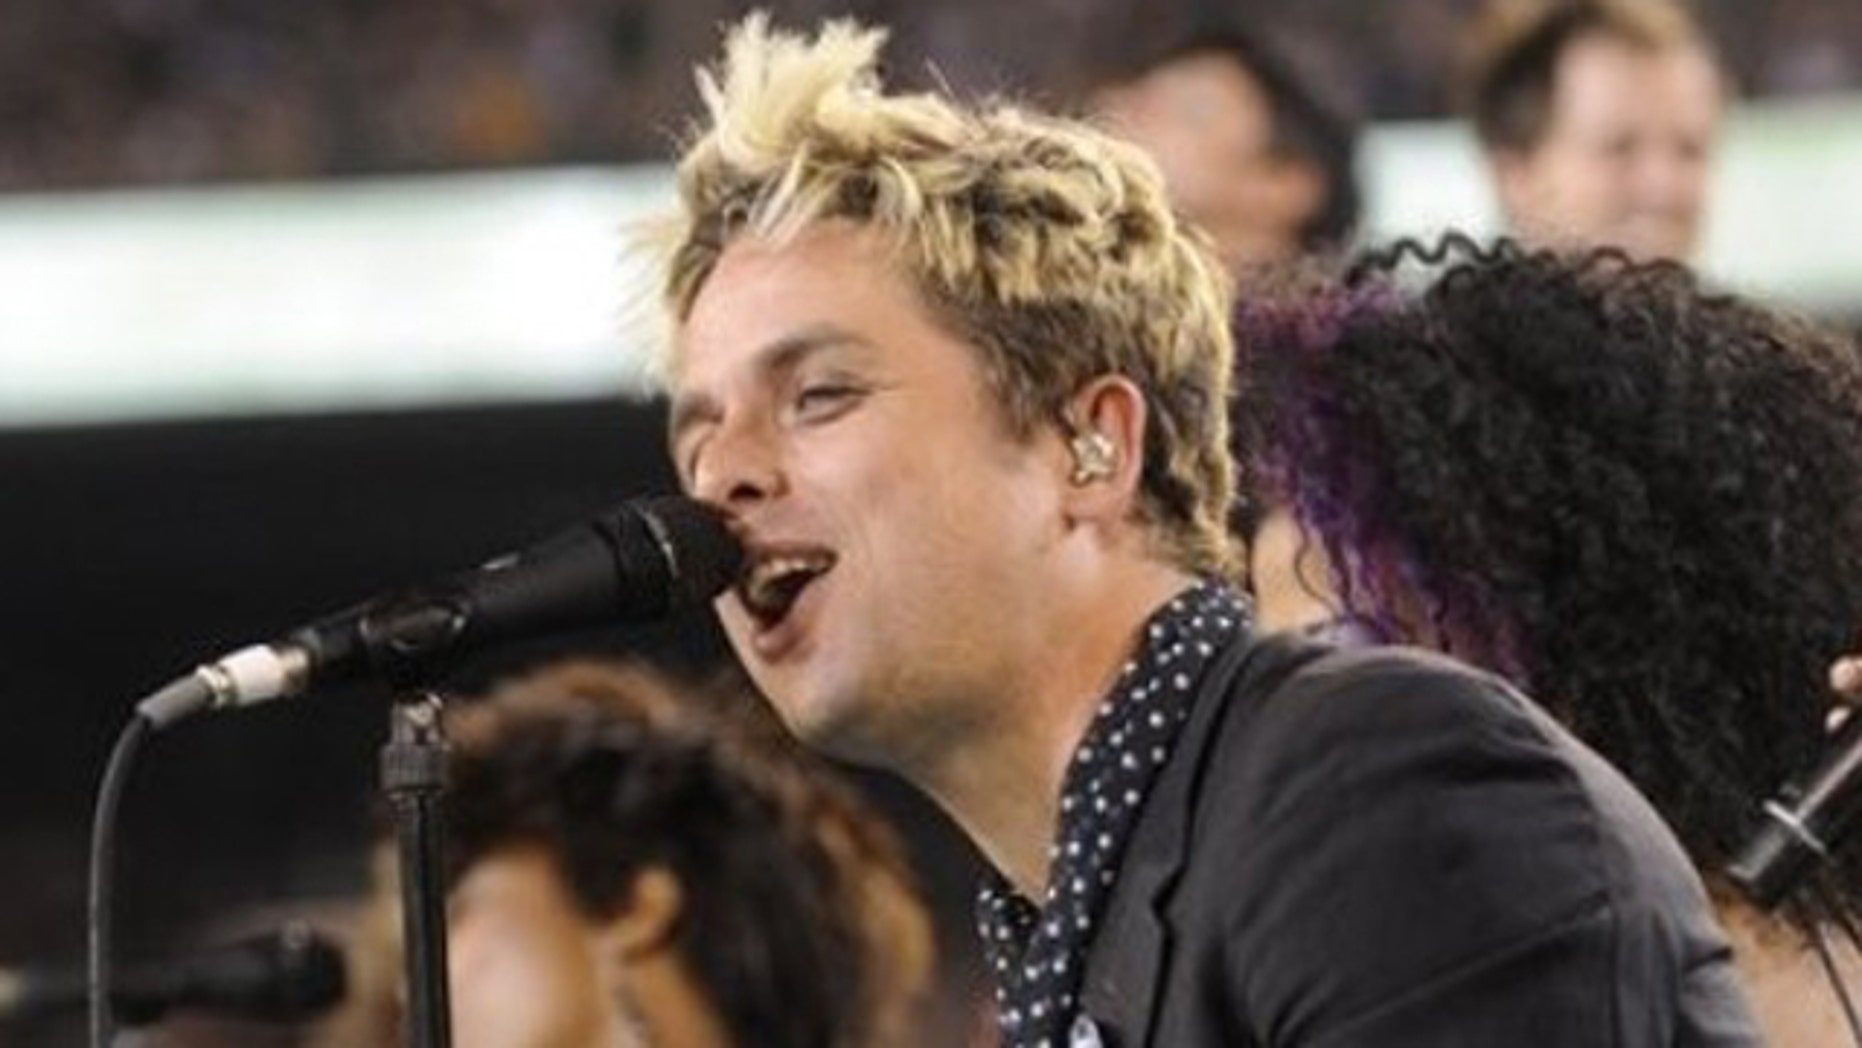 """FILE - In this Sept. 13, 2010 file photo, Billie Joe Armstrong of Green Day performs with cast members of the Broadway musical """"American Idiot"""" at halftime during an NFL football game between the New York Jets and the Baltimore Ravens at New Meadowlands Stadium in East Rutherford, N.J. Green Day front man Billie Joe Armstrong is joining the cast of """"American Idiot,"""" the Broadway show he helped create based on the band's 2004 Grammy-winning album, The Associated Press reported Sunday, Sept. 26, 2010. (AP Photo/Henny Ray Abrams, File)"""